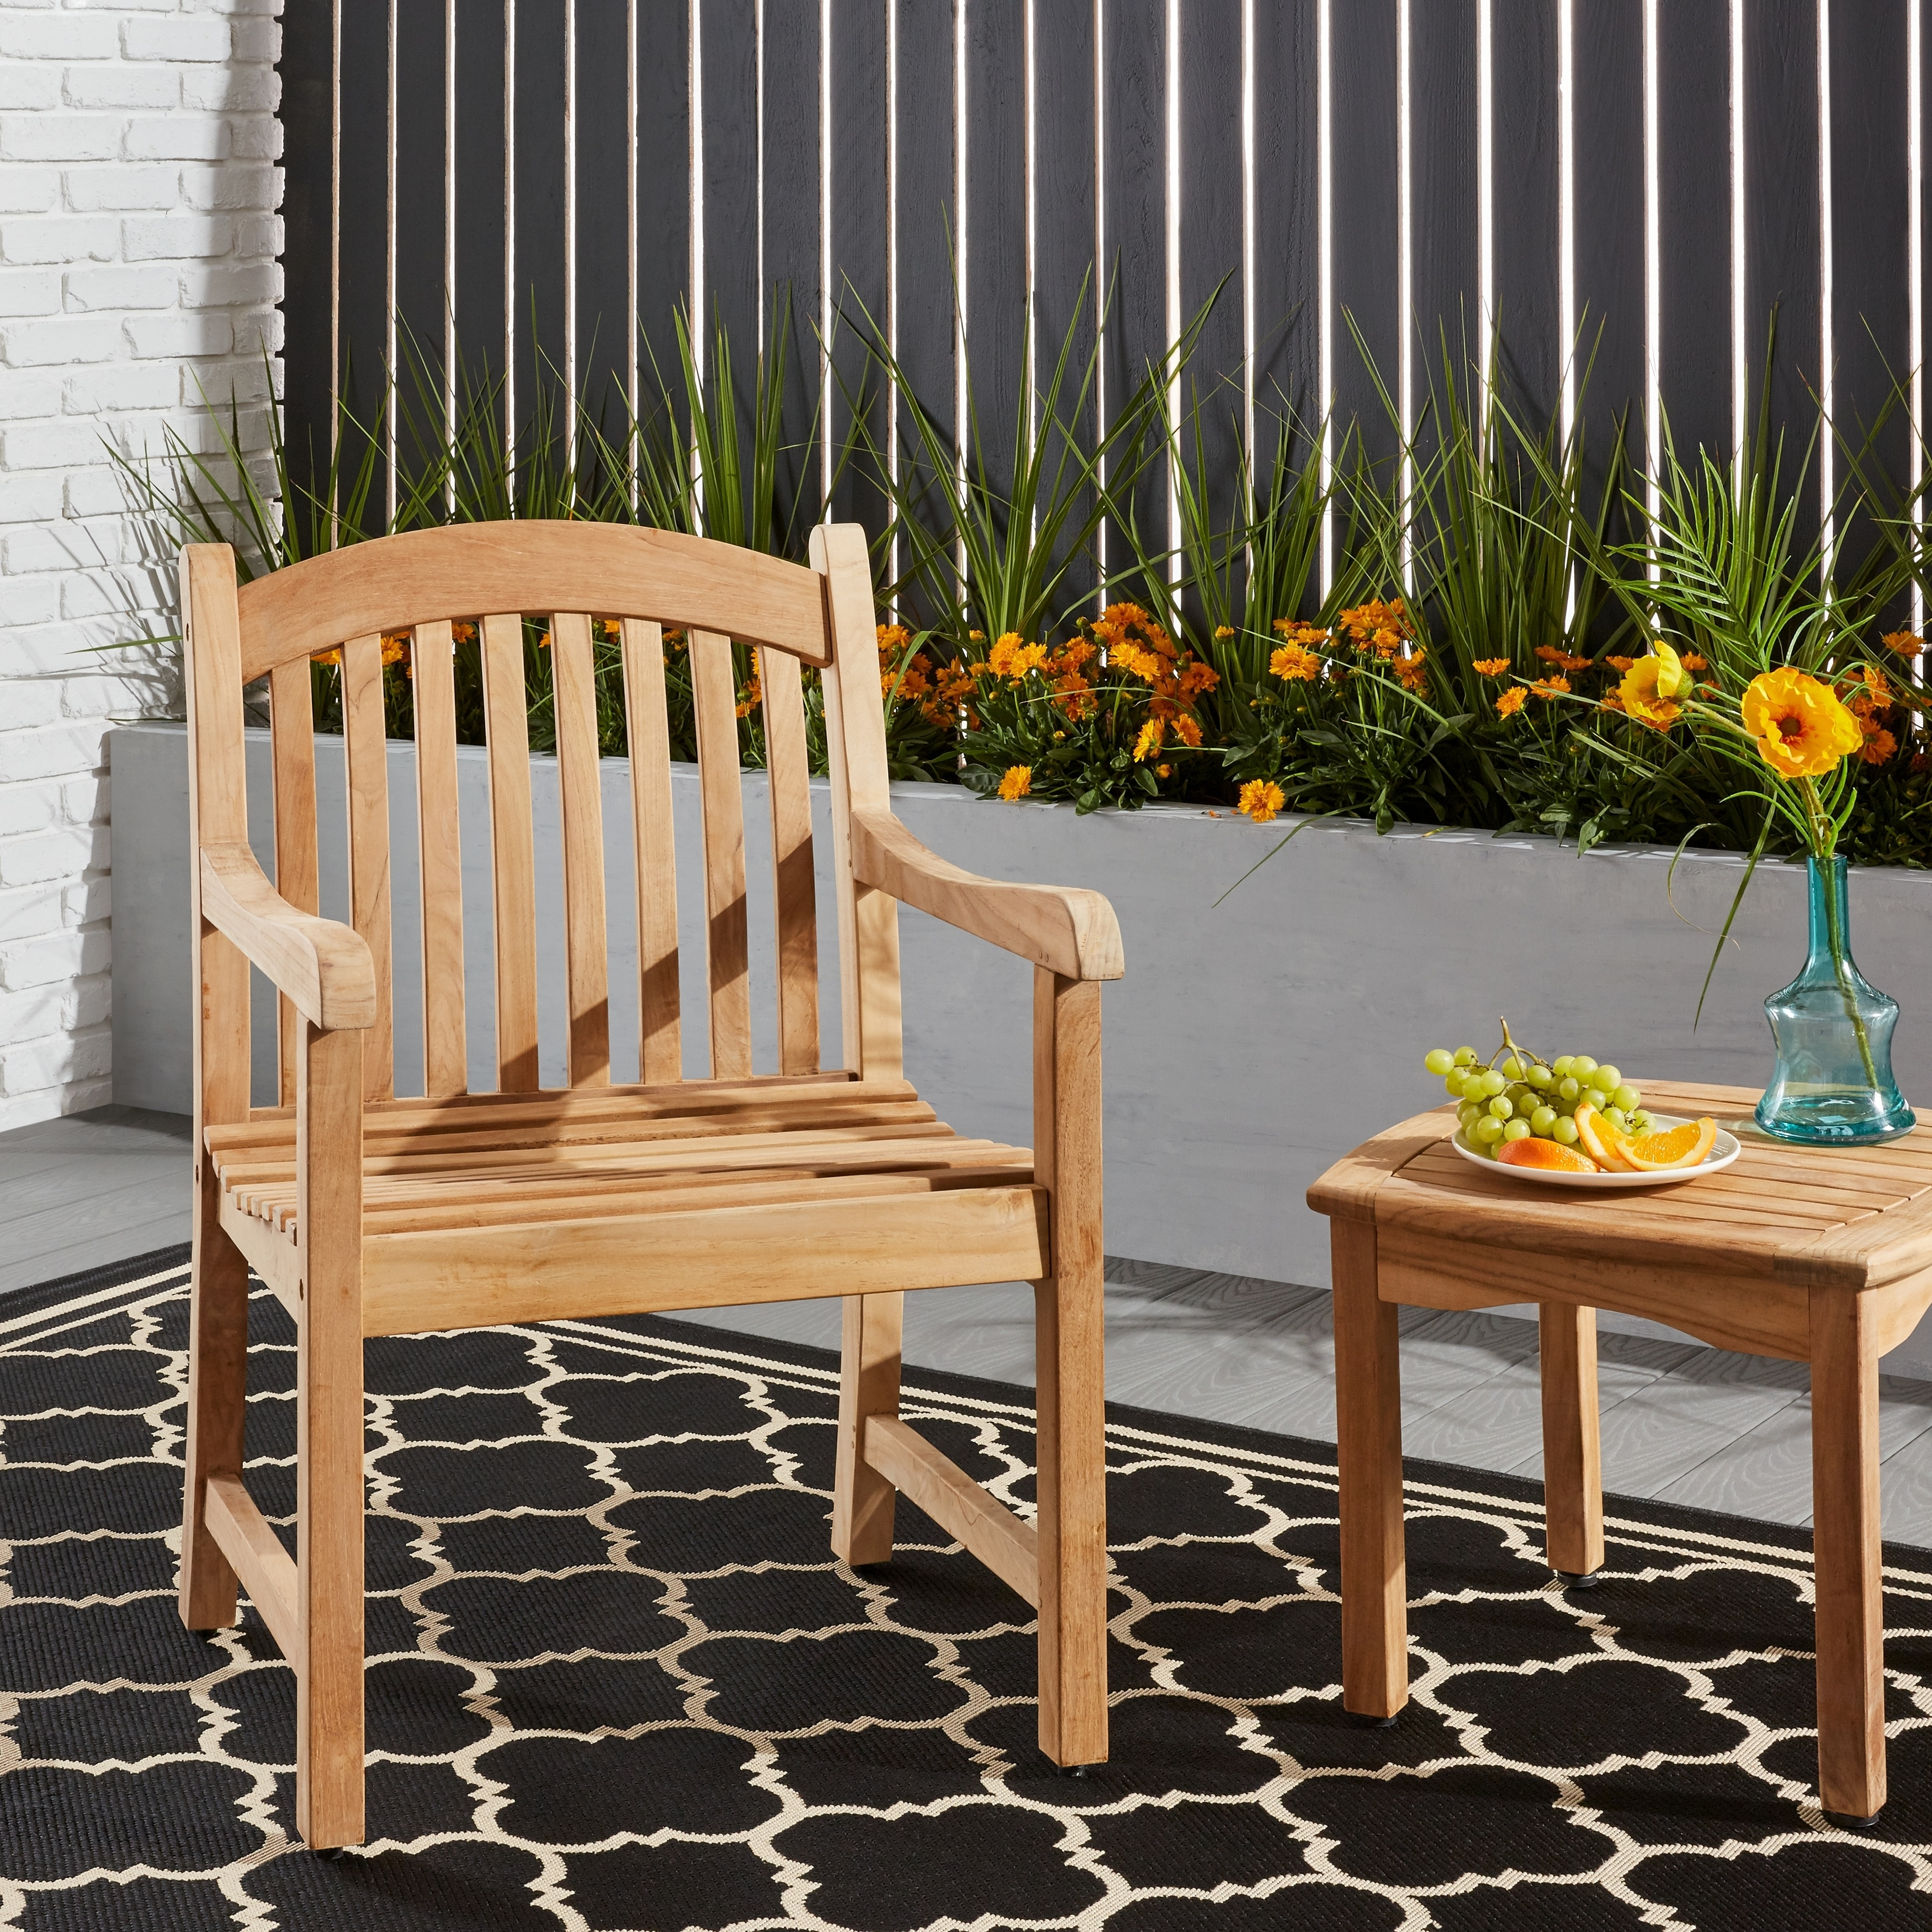 Teak Dining Chairs Buy Patio Furniture Online on PopScreen